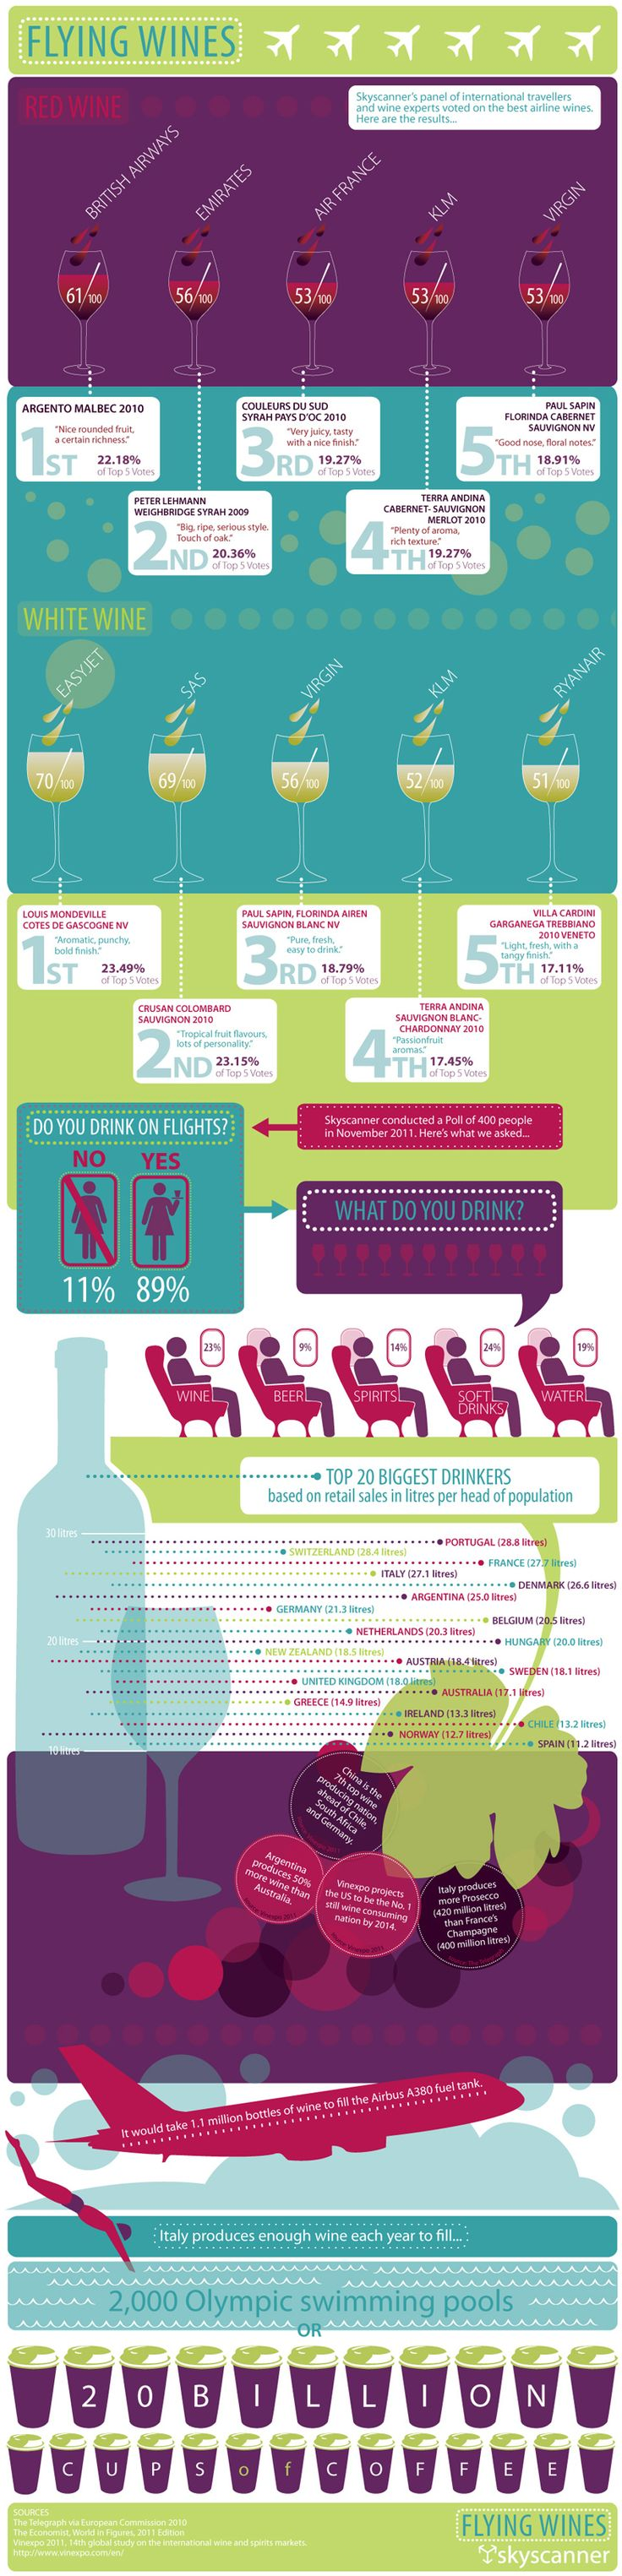 17 best ideas about wine infographic on pinterest